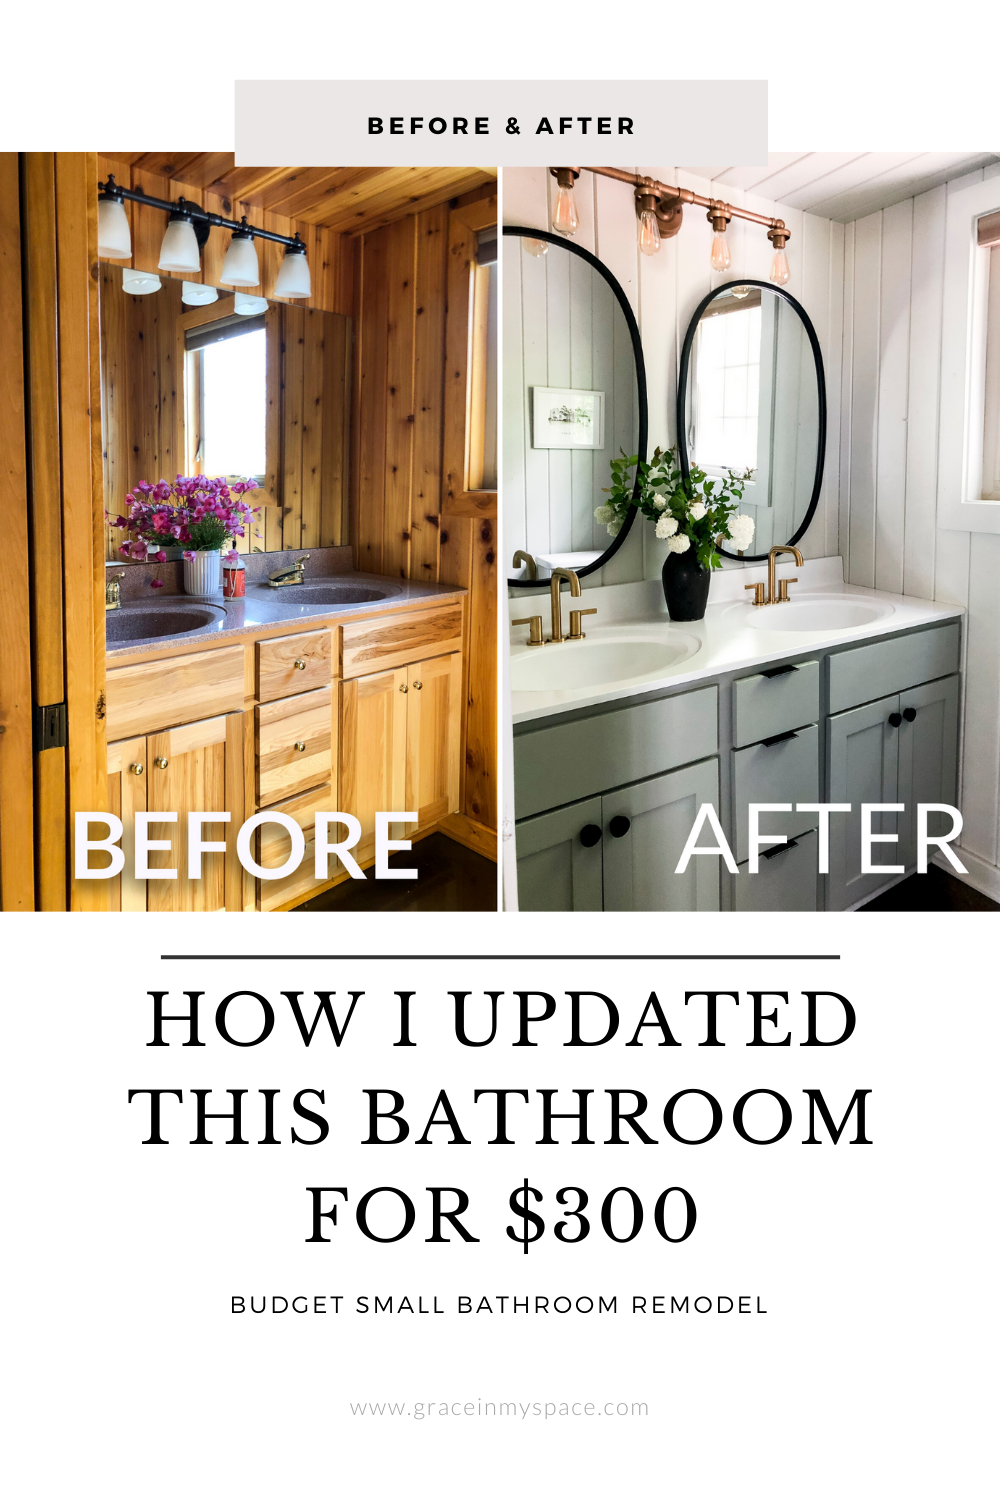 Budget Small Bathroom Remodel for $300